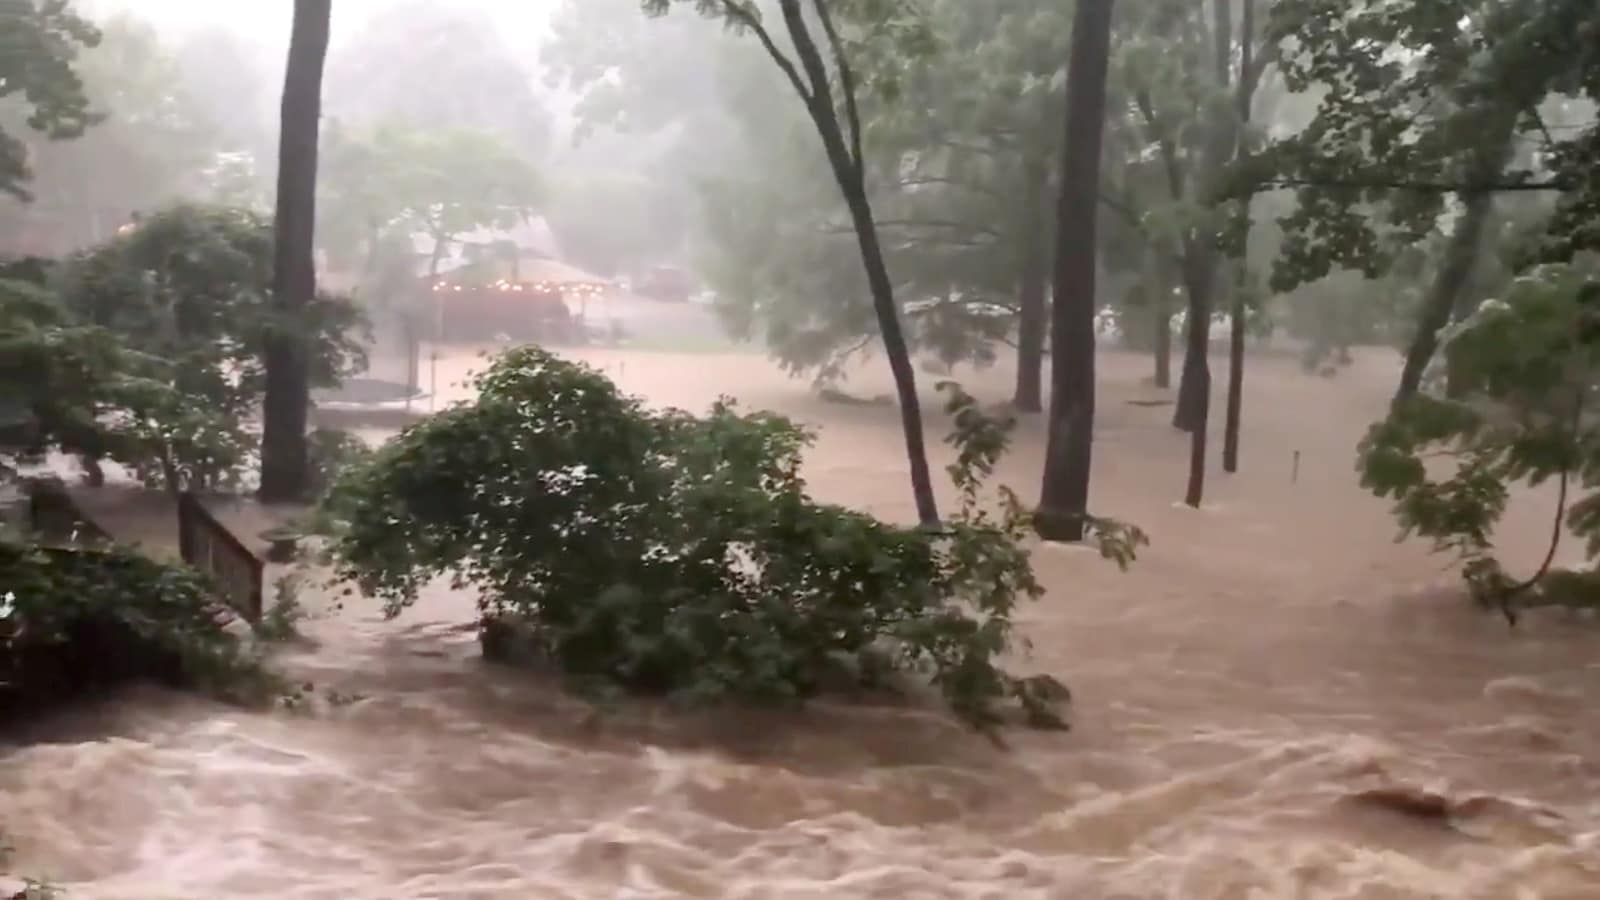 Flood waters are pictured in North Arlington, Virginia, US, July 8, 2019 in this picture grab obtained from social media video. Twitter/Hope Hodge Seck/@hopeseck/via REUTERS